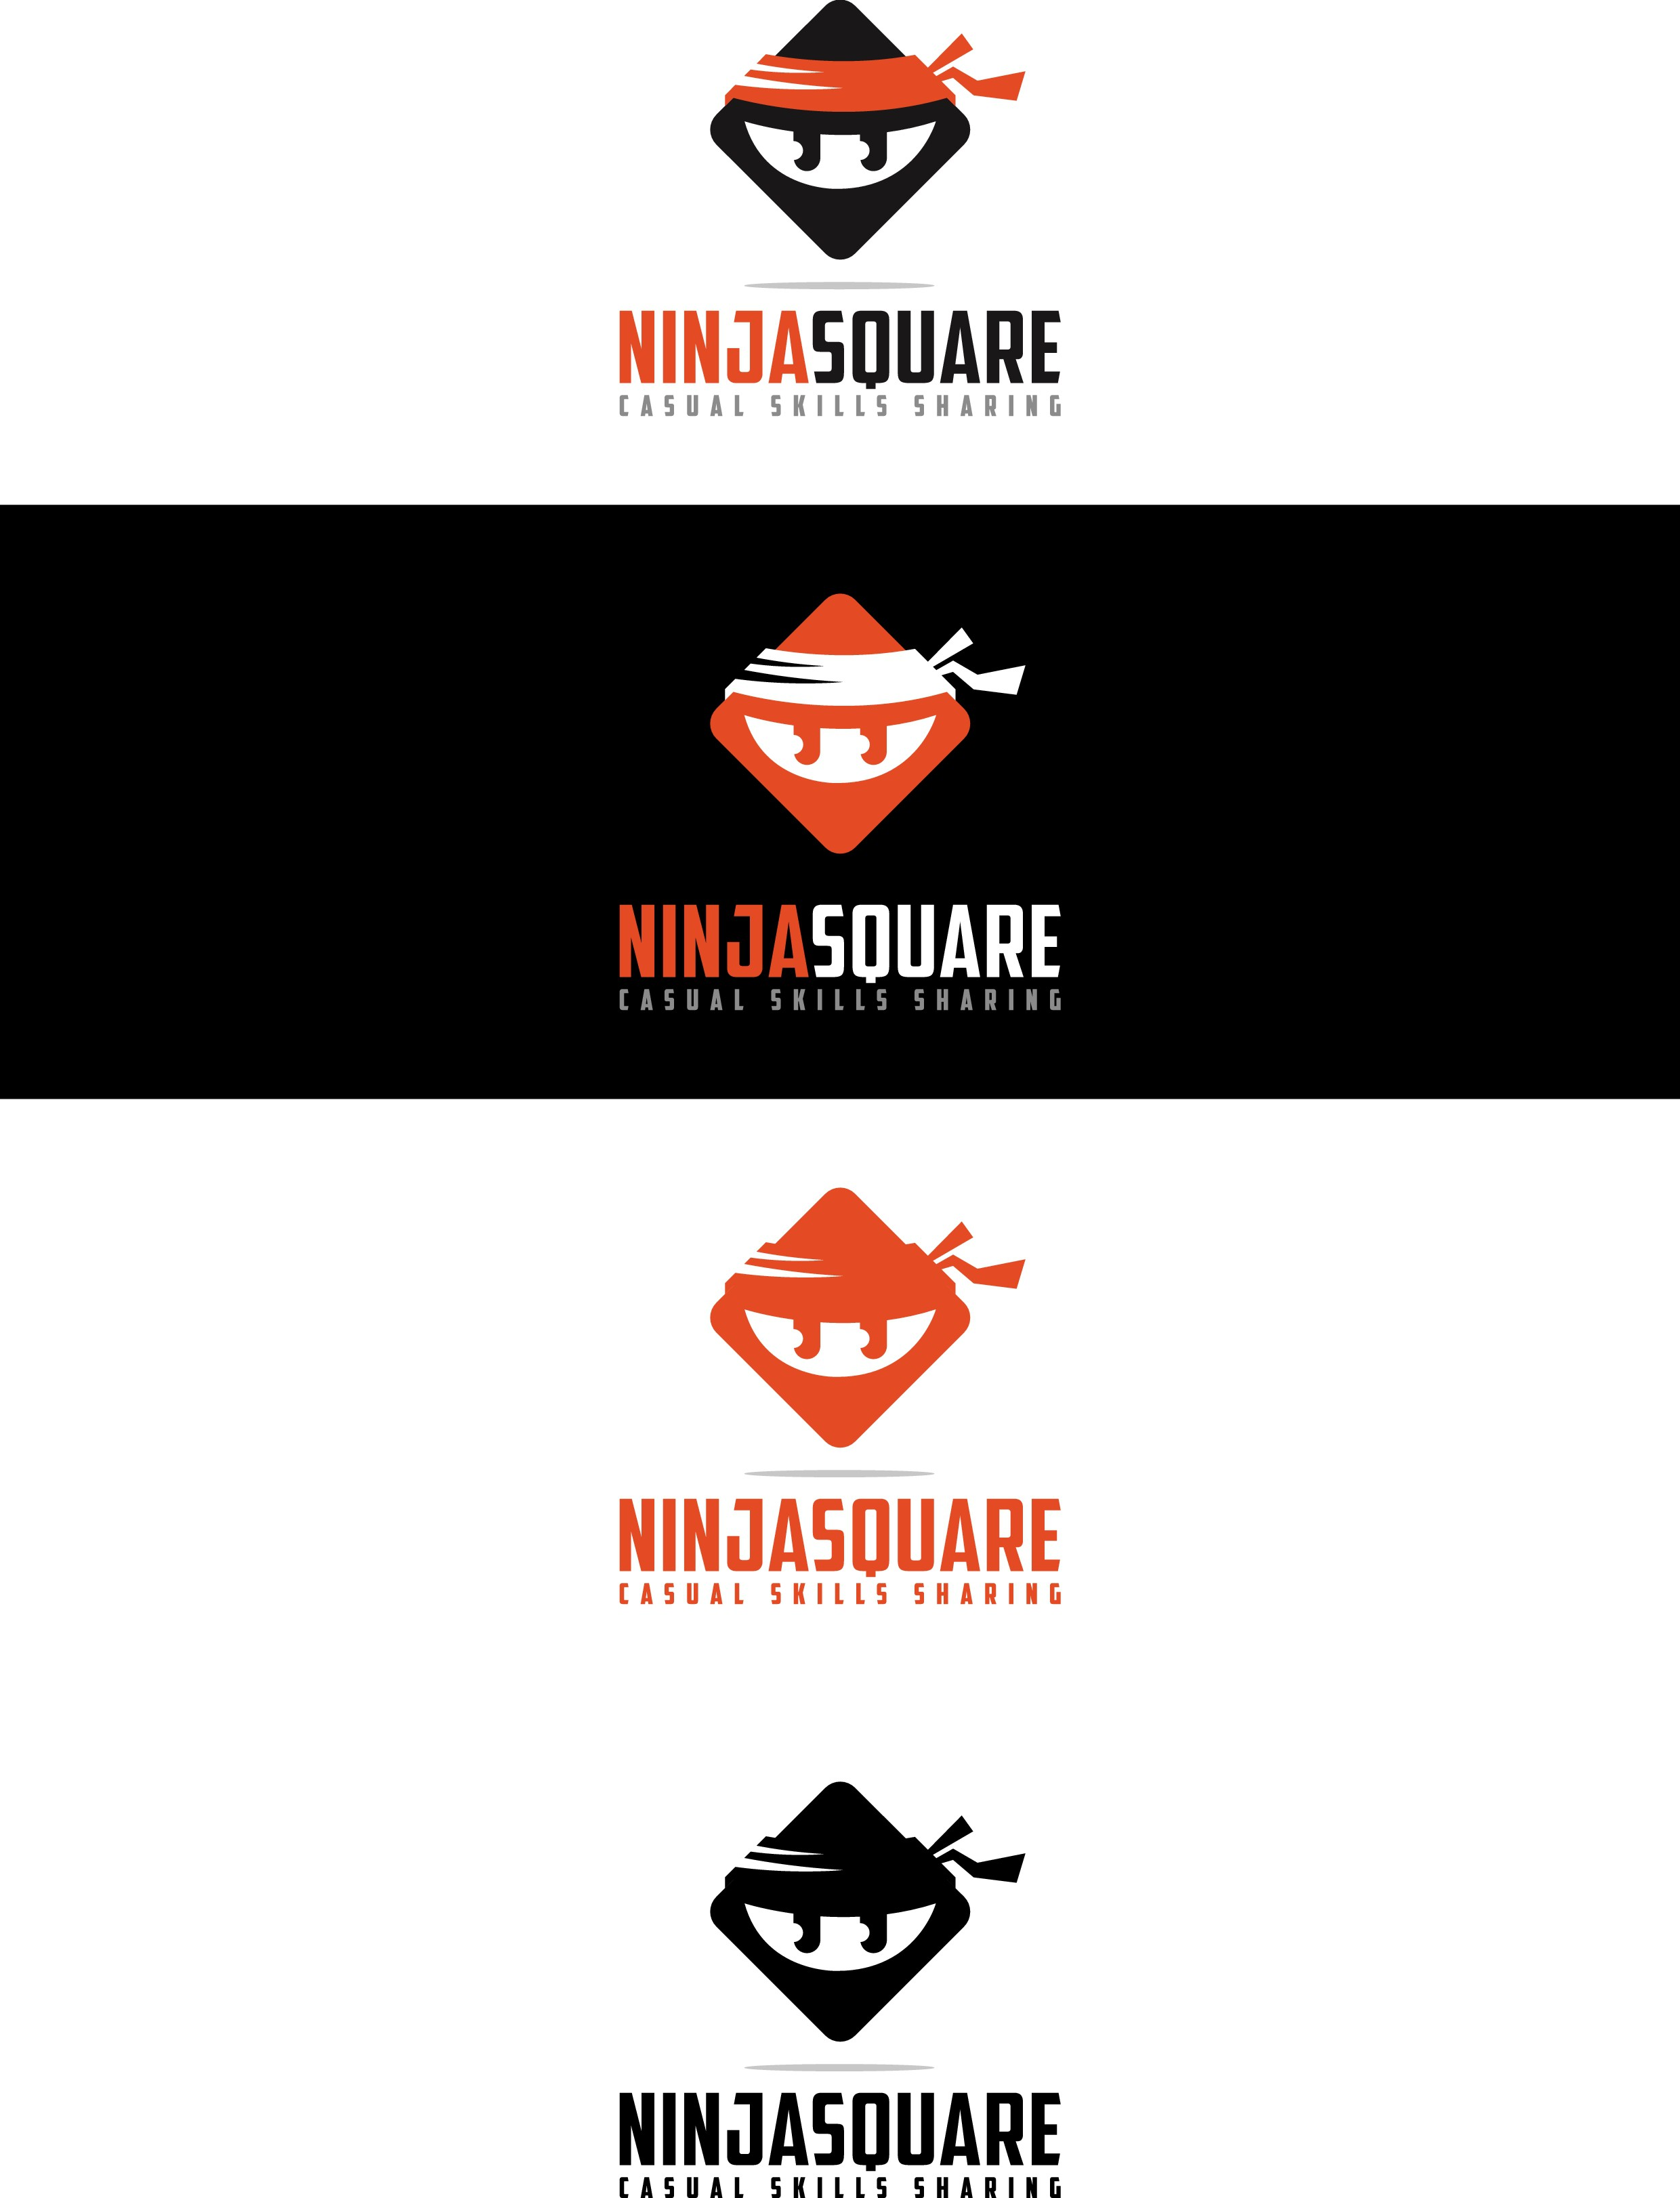 Create a Logo for a casual skills exchange app called NinjaSquare